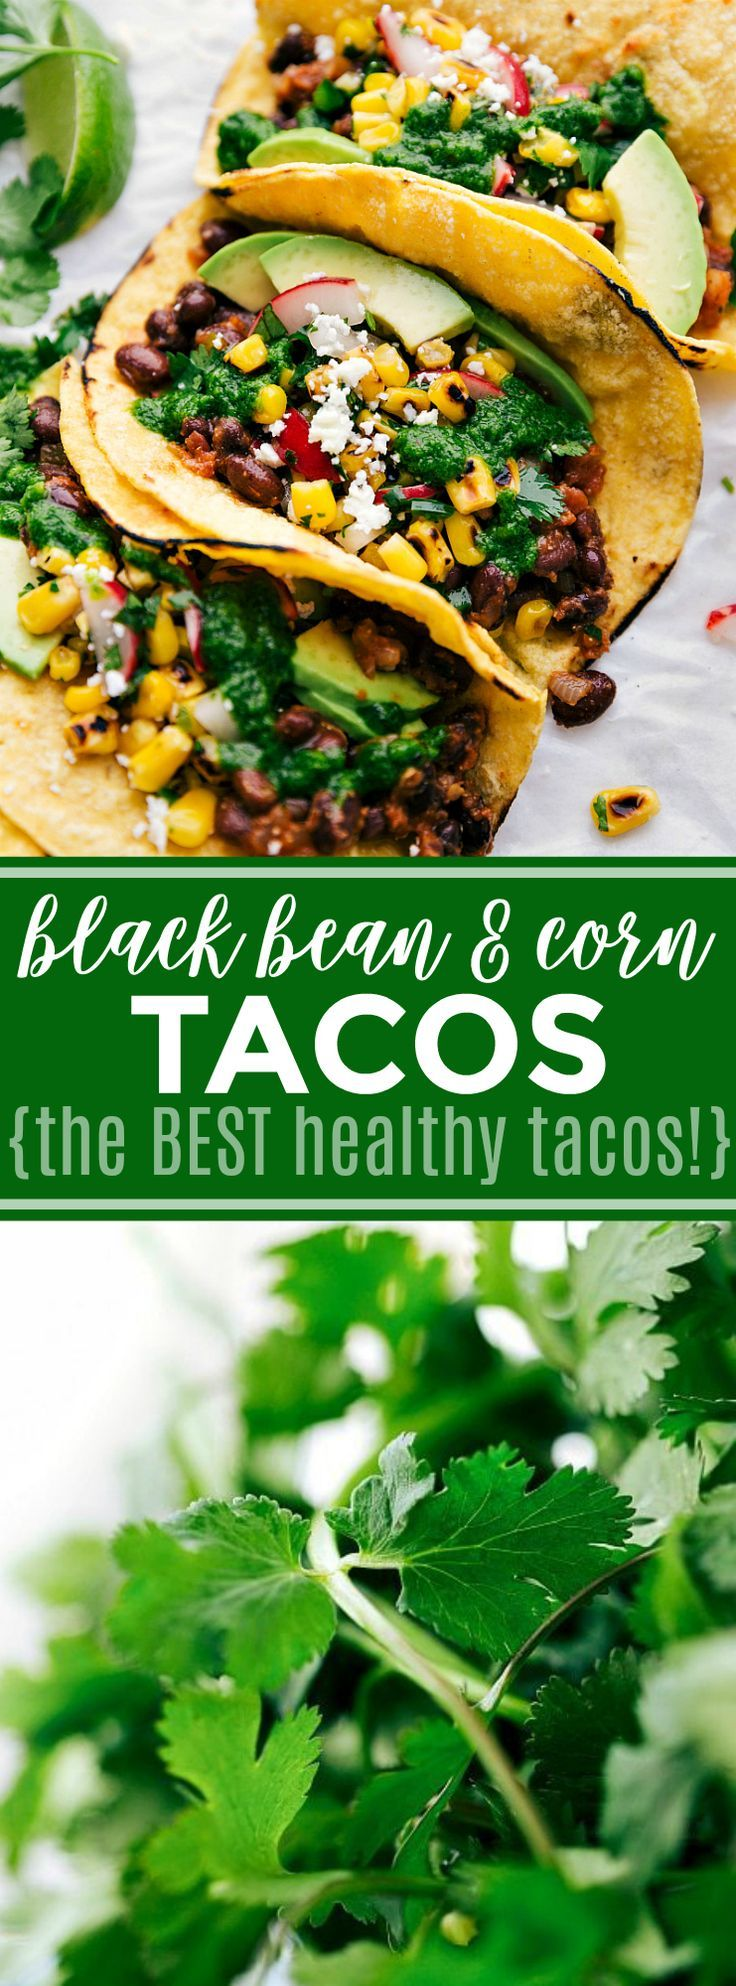 Healthy tacos made with seasoned black beans, a corn relish, fresh avocado, and ... Healthy tacos made with seasoned black beans, a corn relish, fresh avocado, and ...  Recipes Recipes Easy